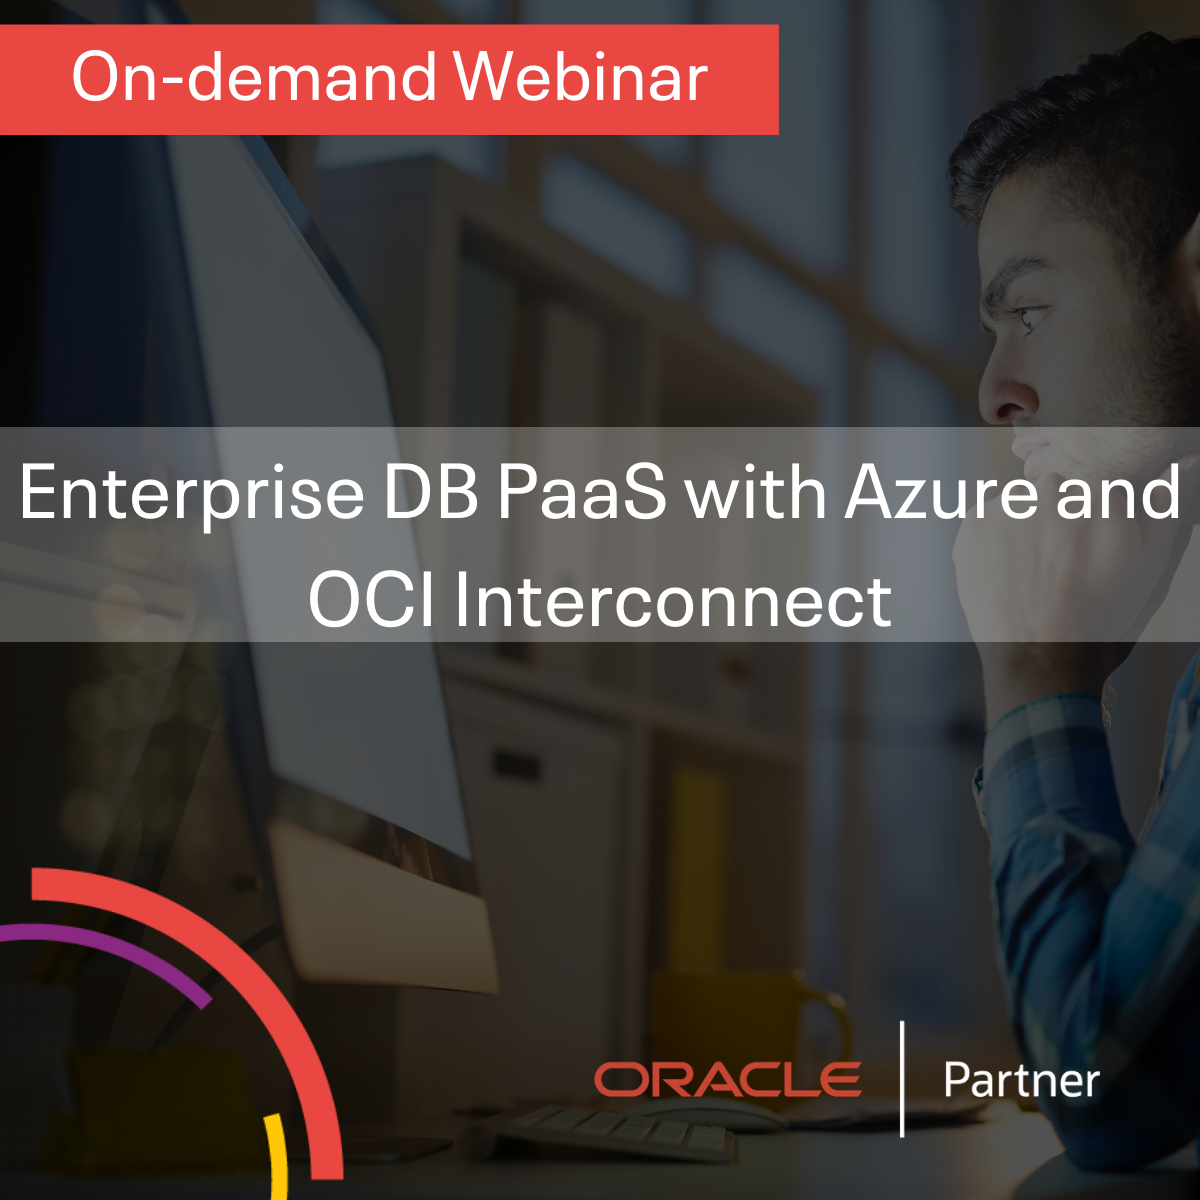 Enterprise DB PaaS with Azure and OCI Interconnect